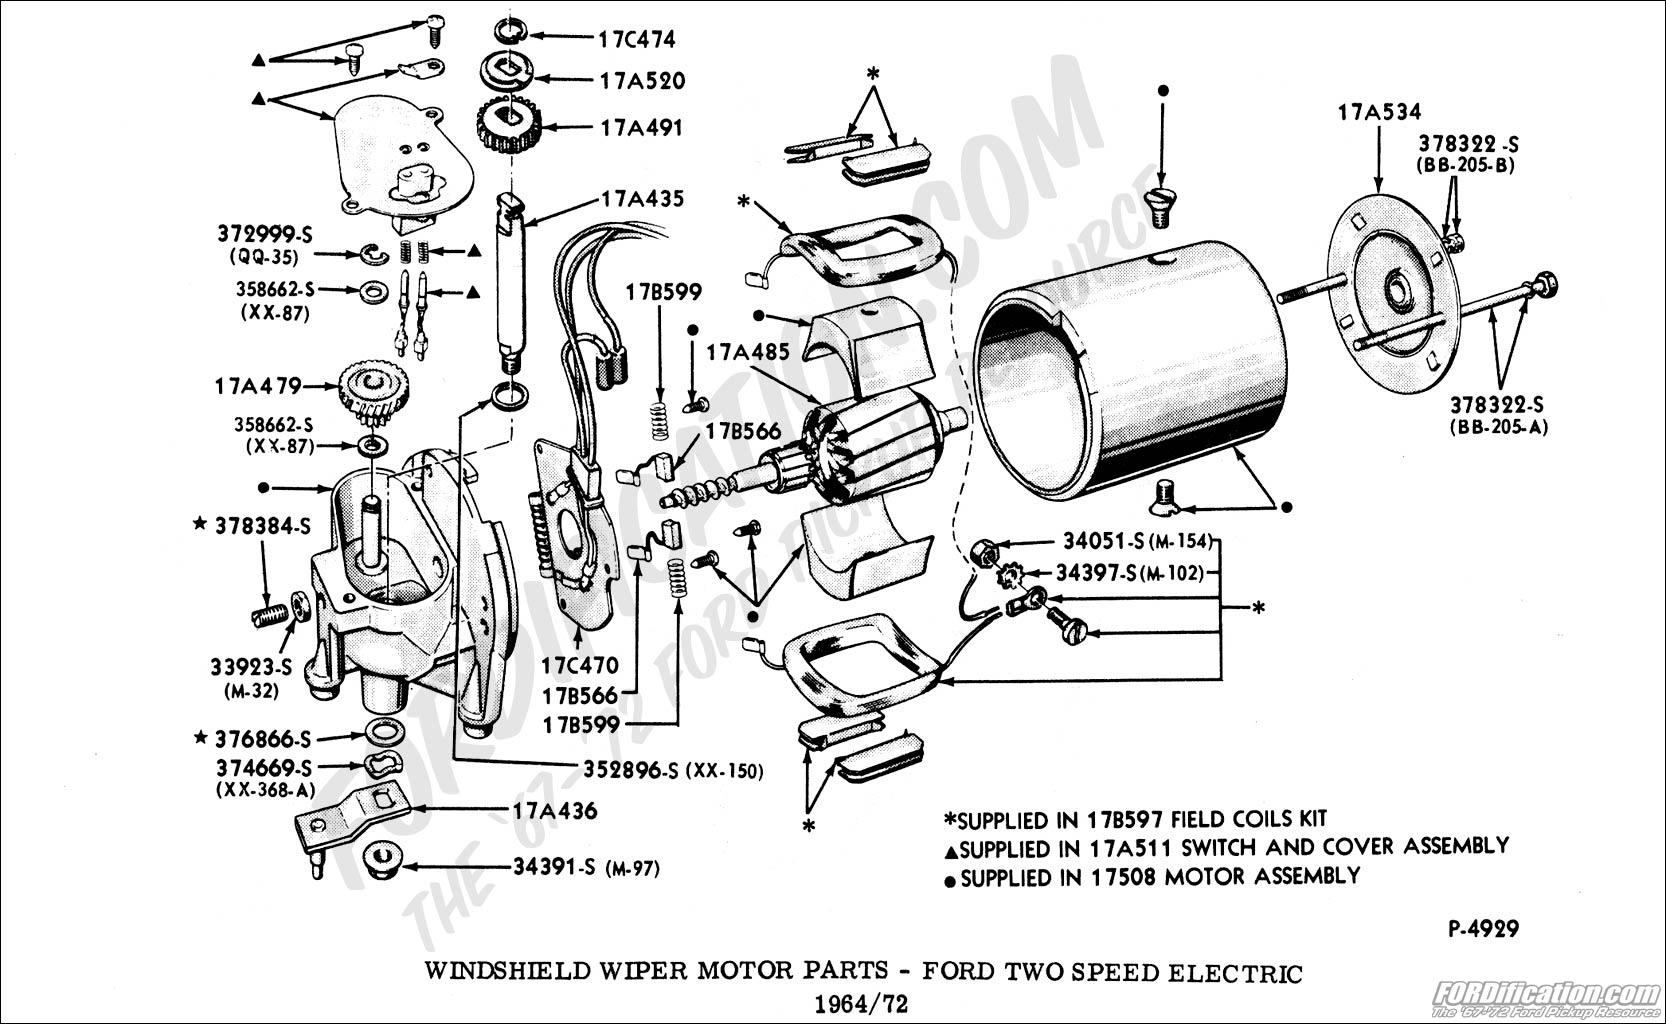 Ford F150 Wiper Motor Wiring Diagram